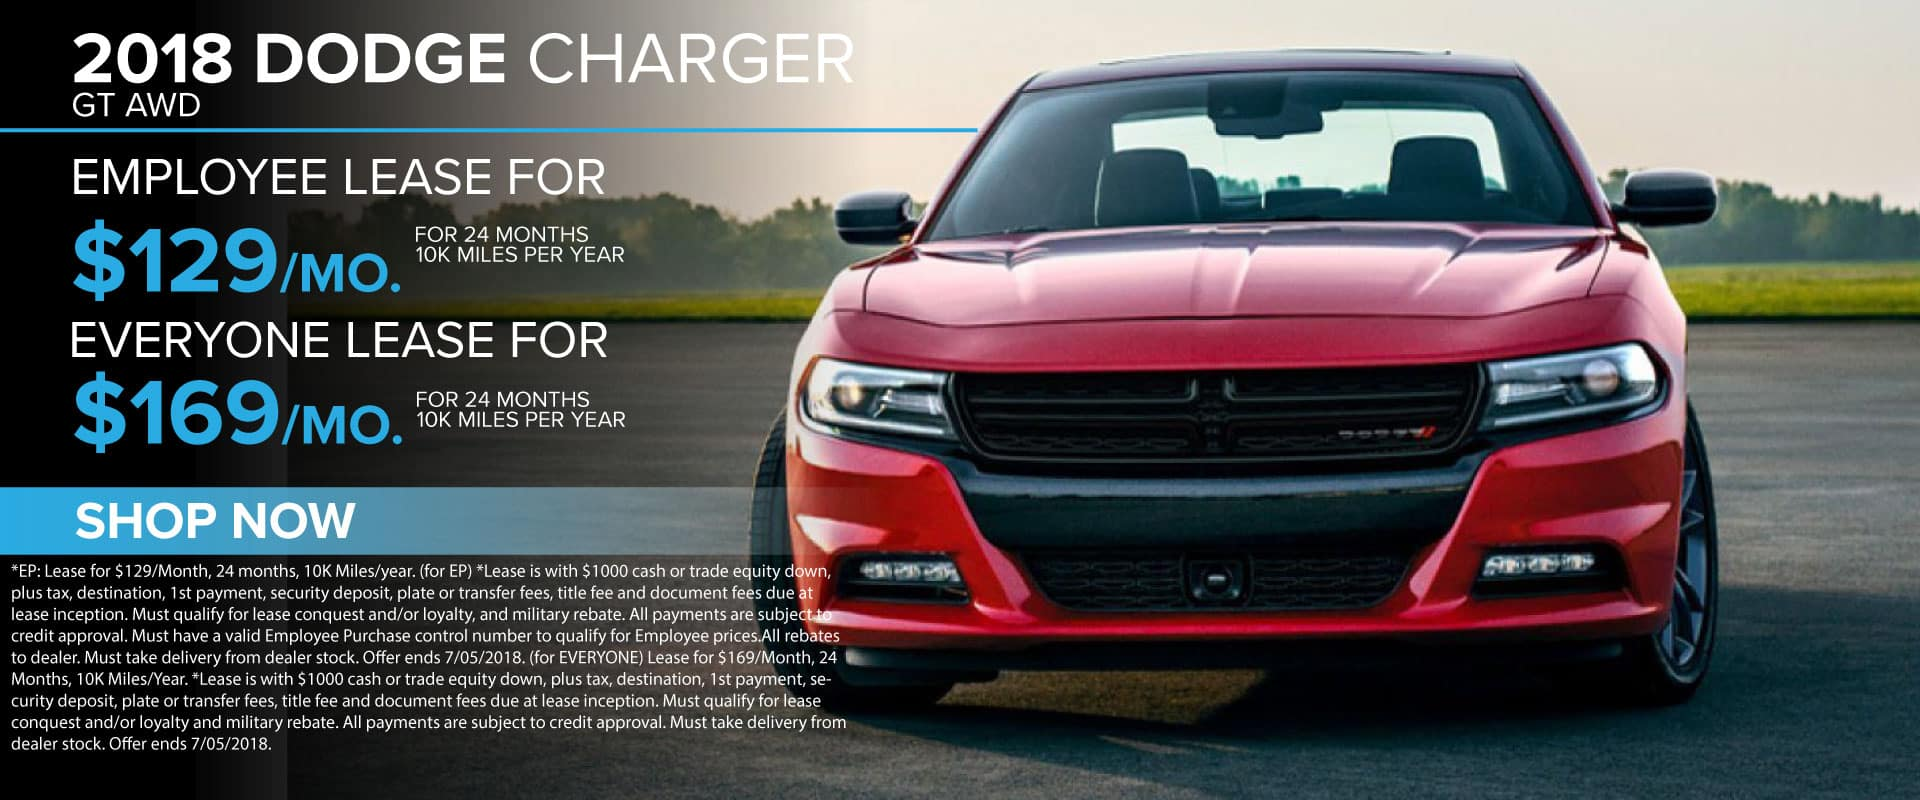 chrysler dealership of in lafontaine ram fiat dodge charger lansing mi dealer jeep crew